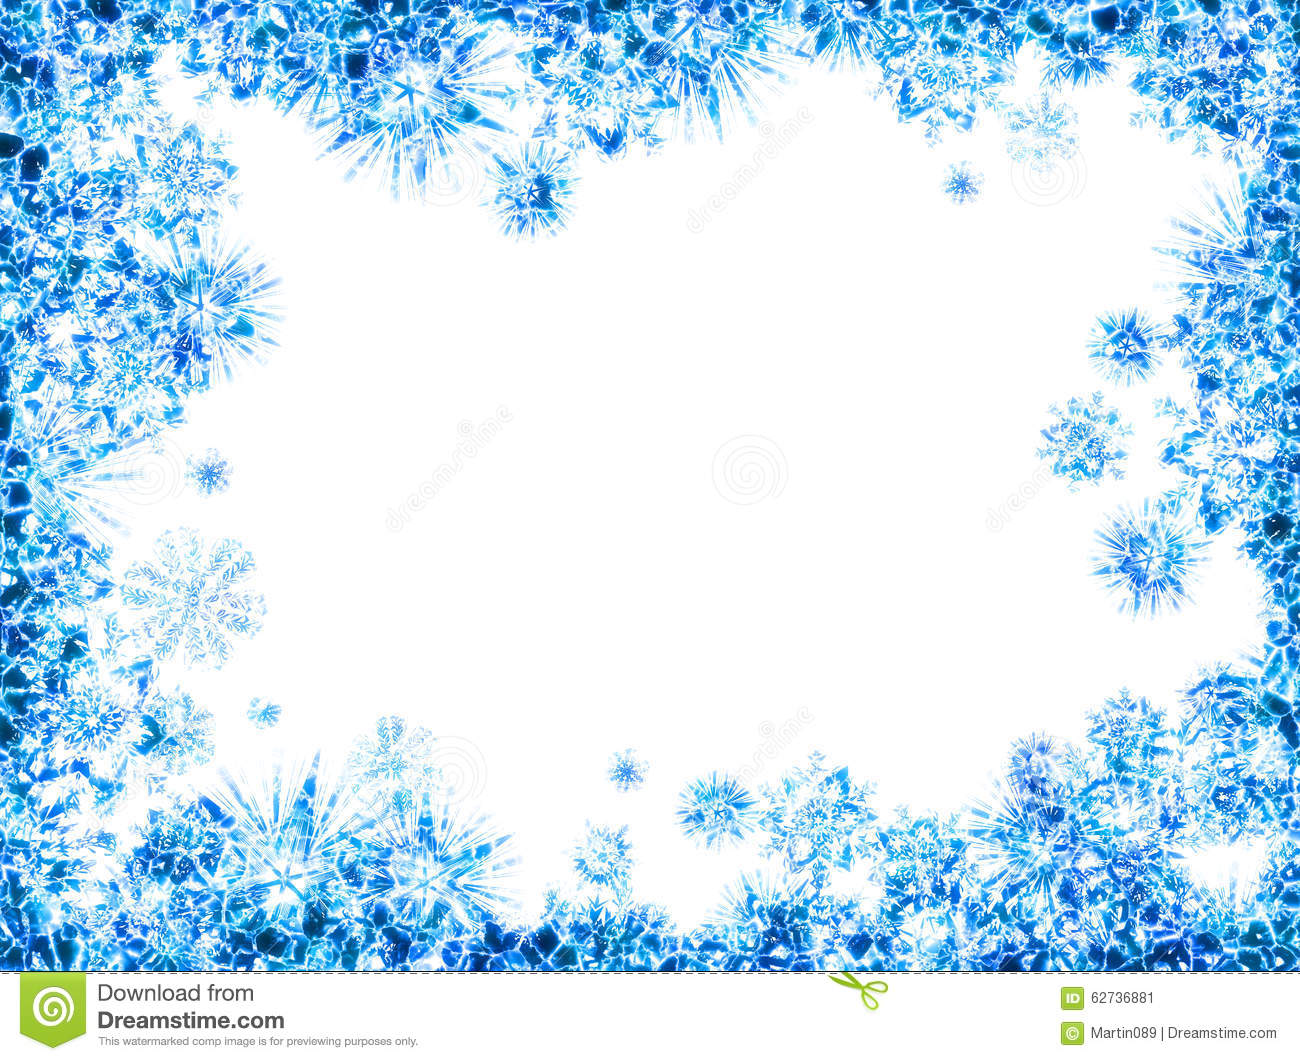 Abstract Ice Frame Stock Illustration - Image: 62736881